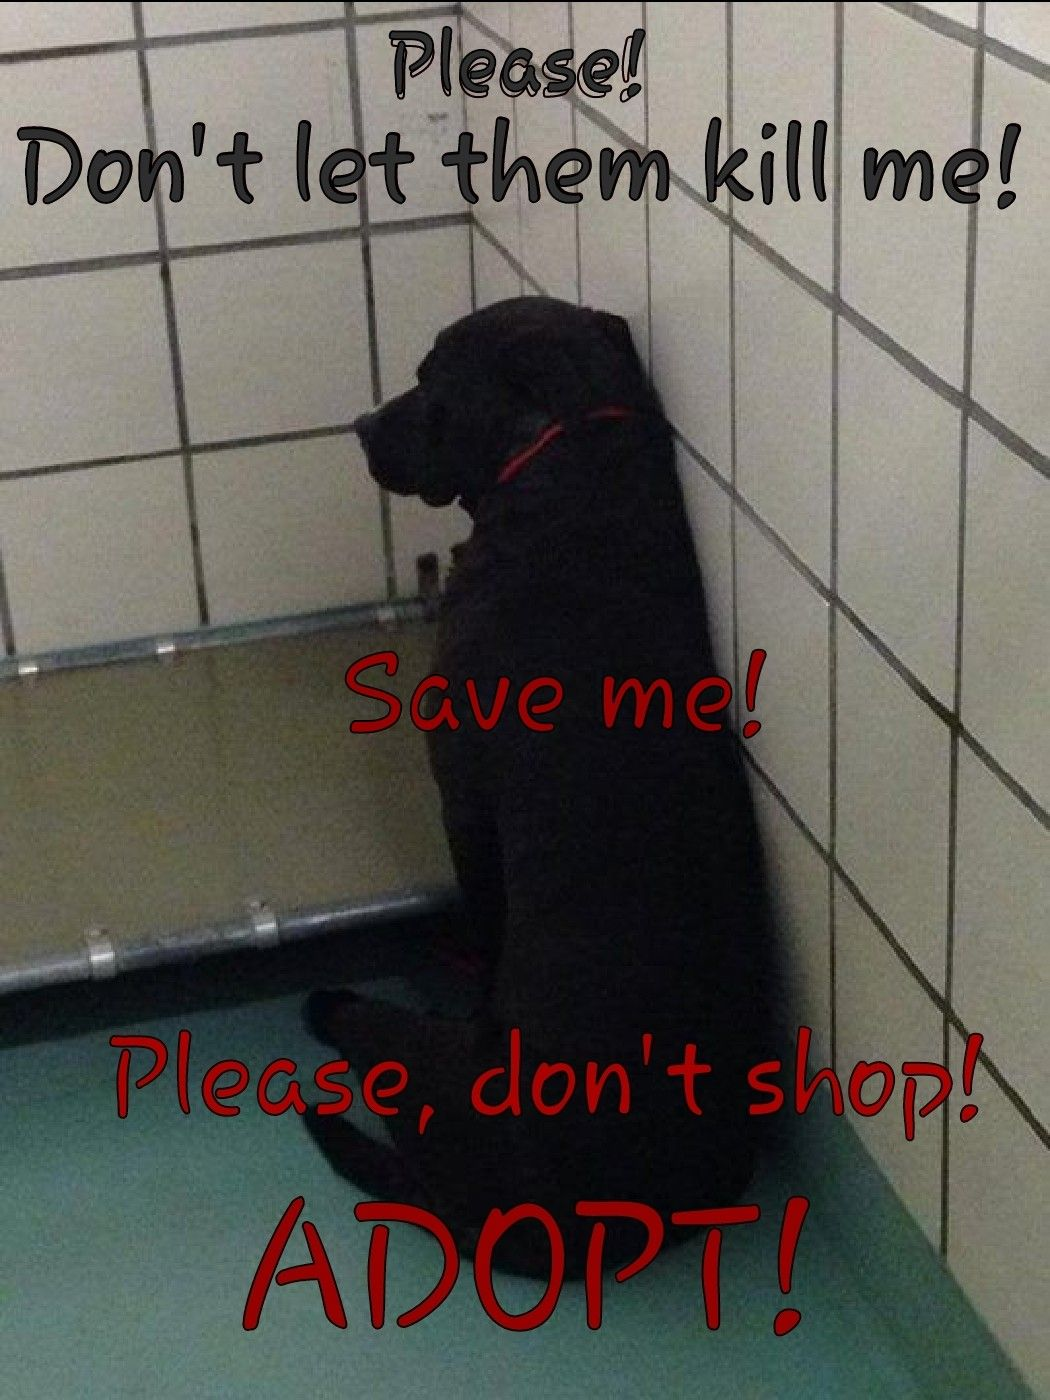 Please Do Not Shop Adopt Go To A Local Shelter To Find Your New Familymember Dog Adoption Pets Animals